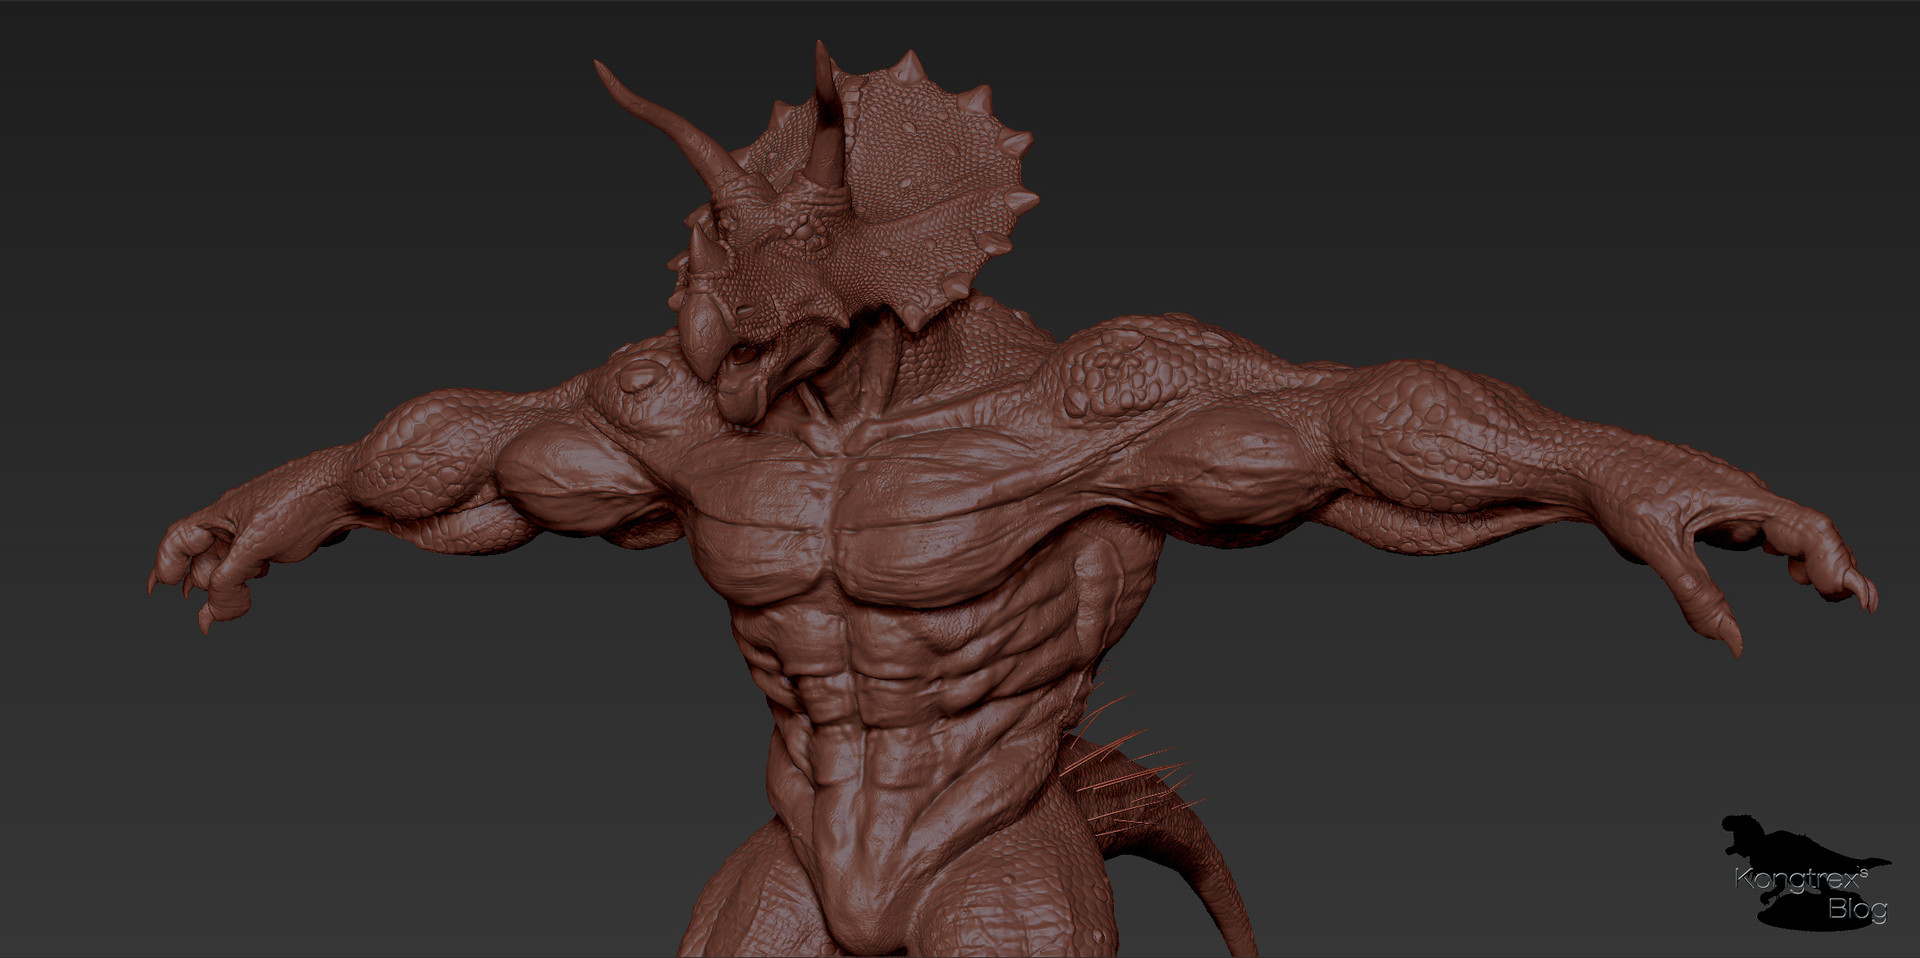 Jin kyeom kim zbrush document2